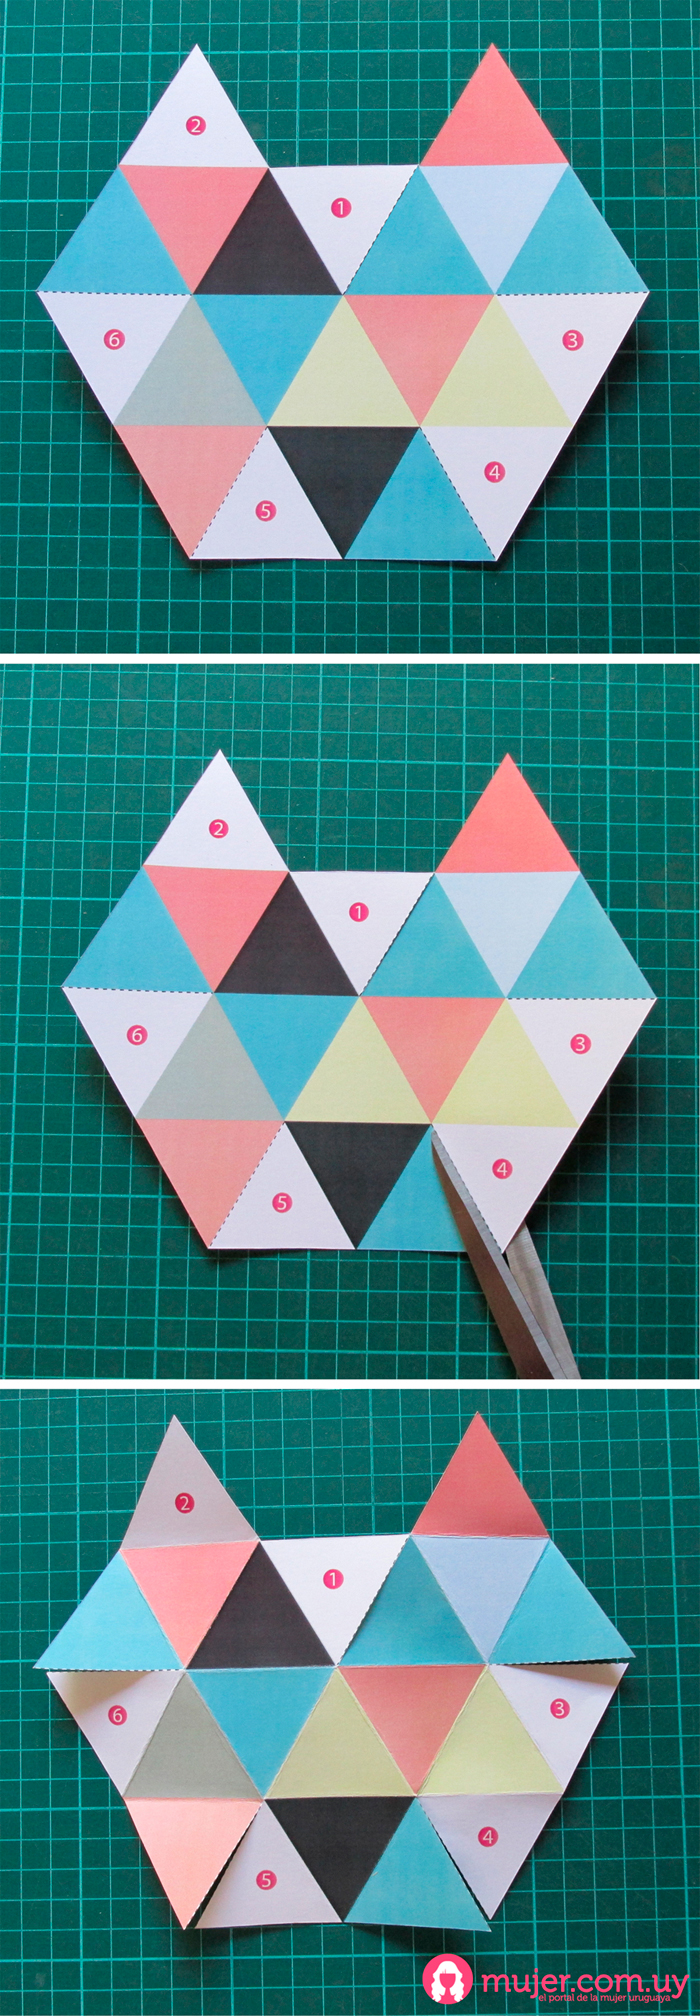 Origami: Geoide | Mujer.com.uy